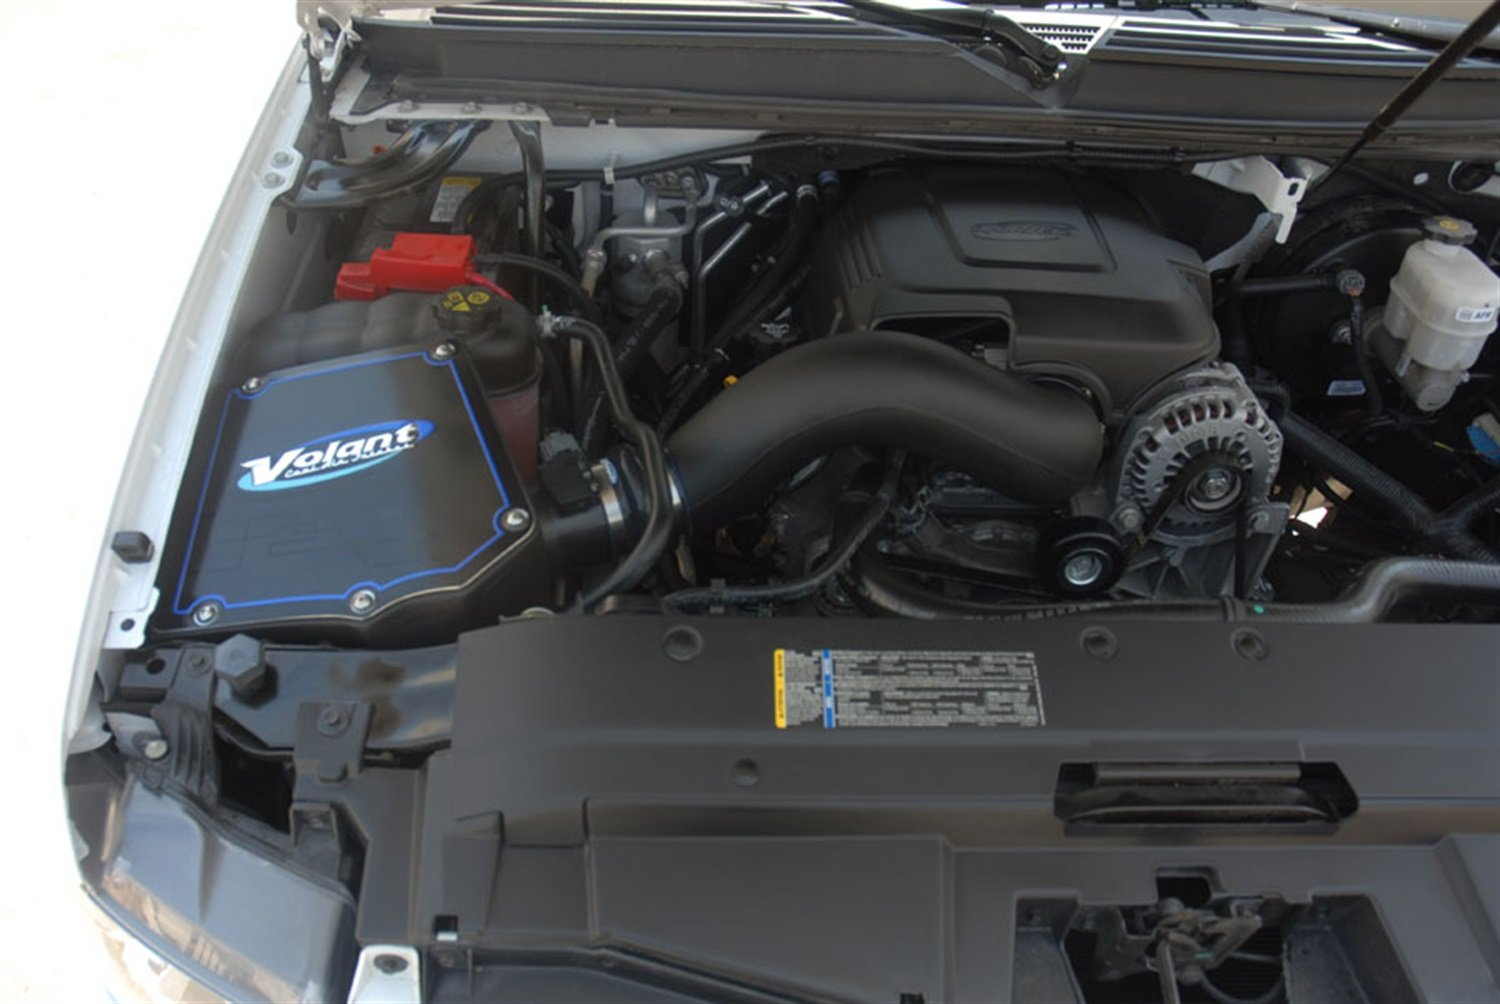 Volant 15453 Cool Air Intake Kit with Pro 5 Filter by Volant (Image #2)